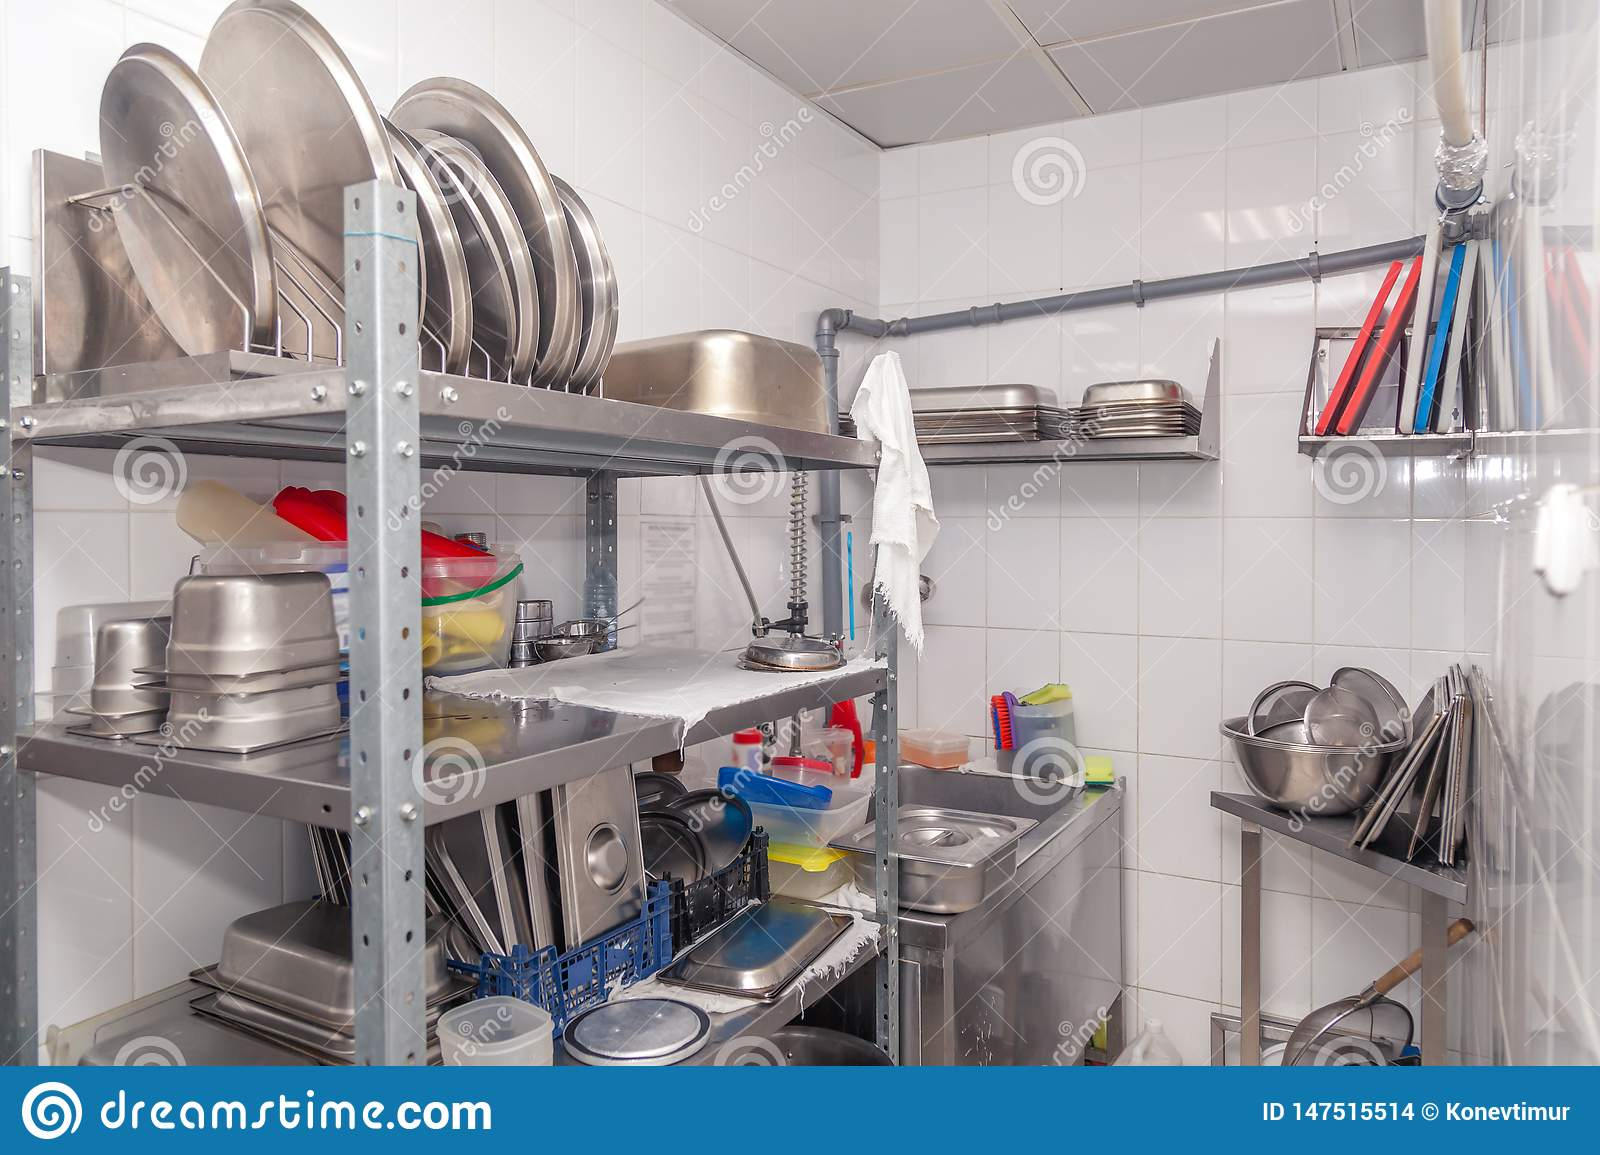 View Of Restaurant S Professional Washer Sink Brushes Metal Shelving And Shelves With Kitchen Utensils Cups Cutting Board Stock Photo Image Of Shelves Restaurant 147515514